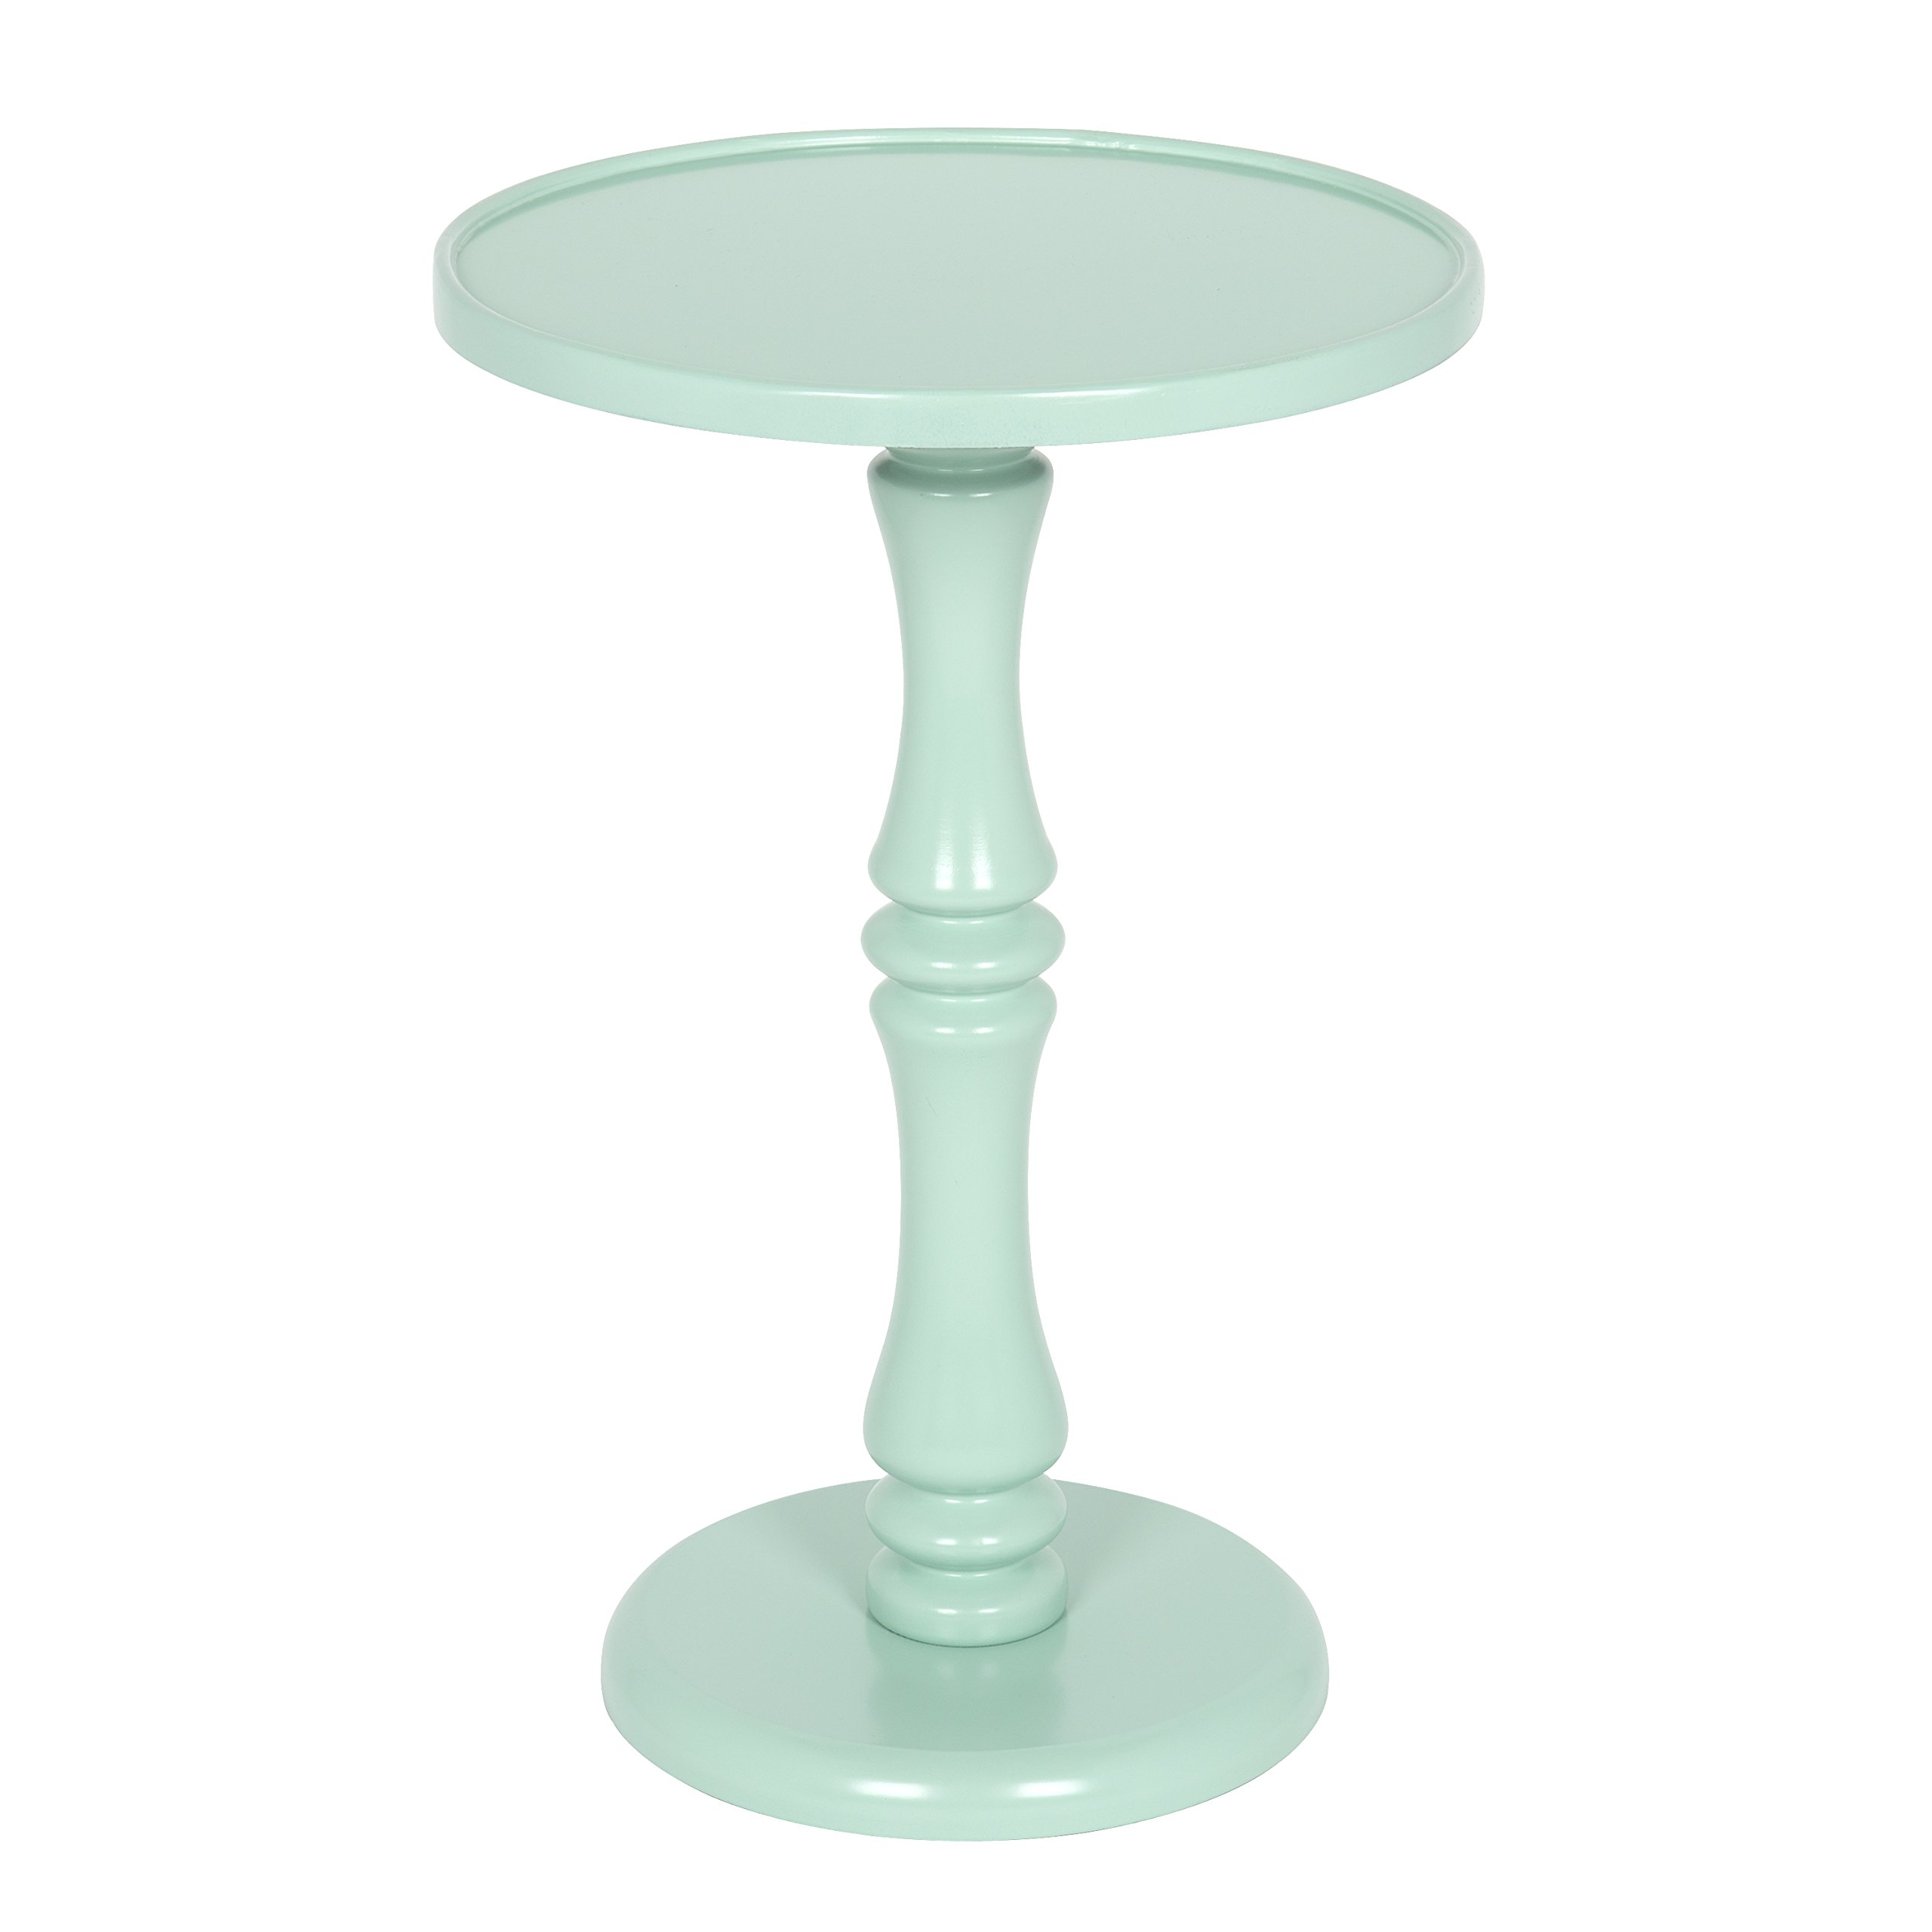 Kate and Laurel Rumi Round Wood Pedestal Accent Table, Mint Green